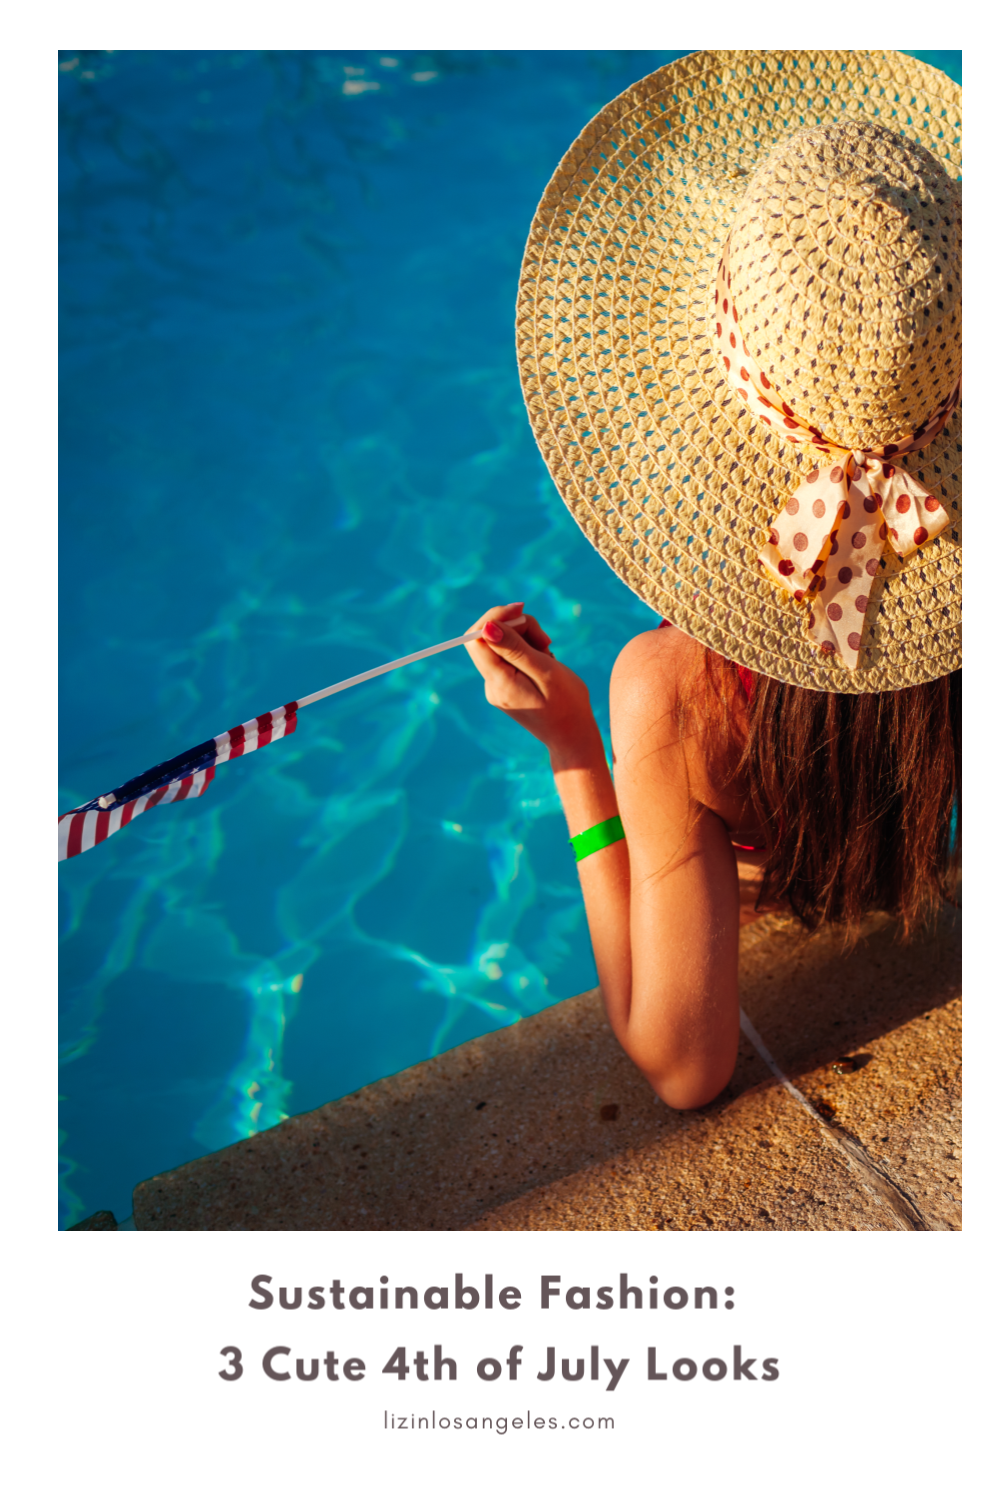 Sustainable Fashion: 3 Cute 4th of July Looks, a blog post by Liz in Los Angeles, Los Angeles Lifestyle Blogger: an image of a woman at a pool